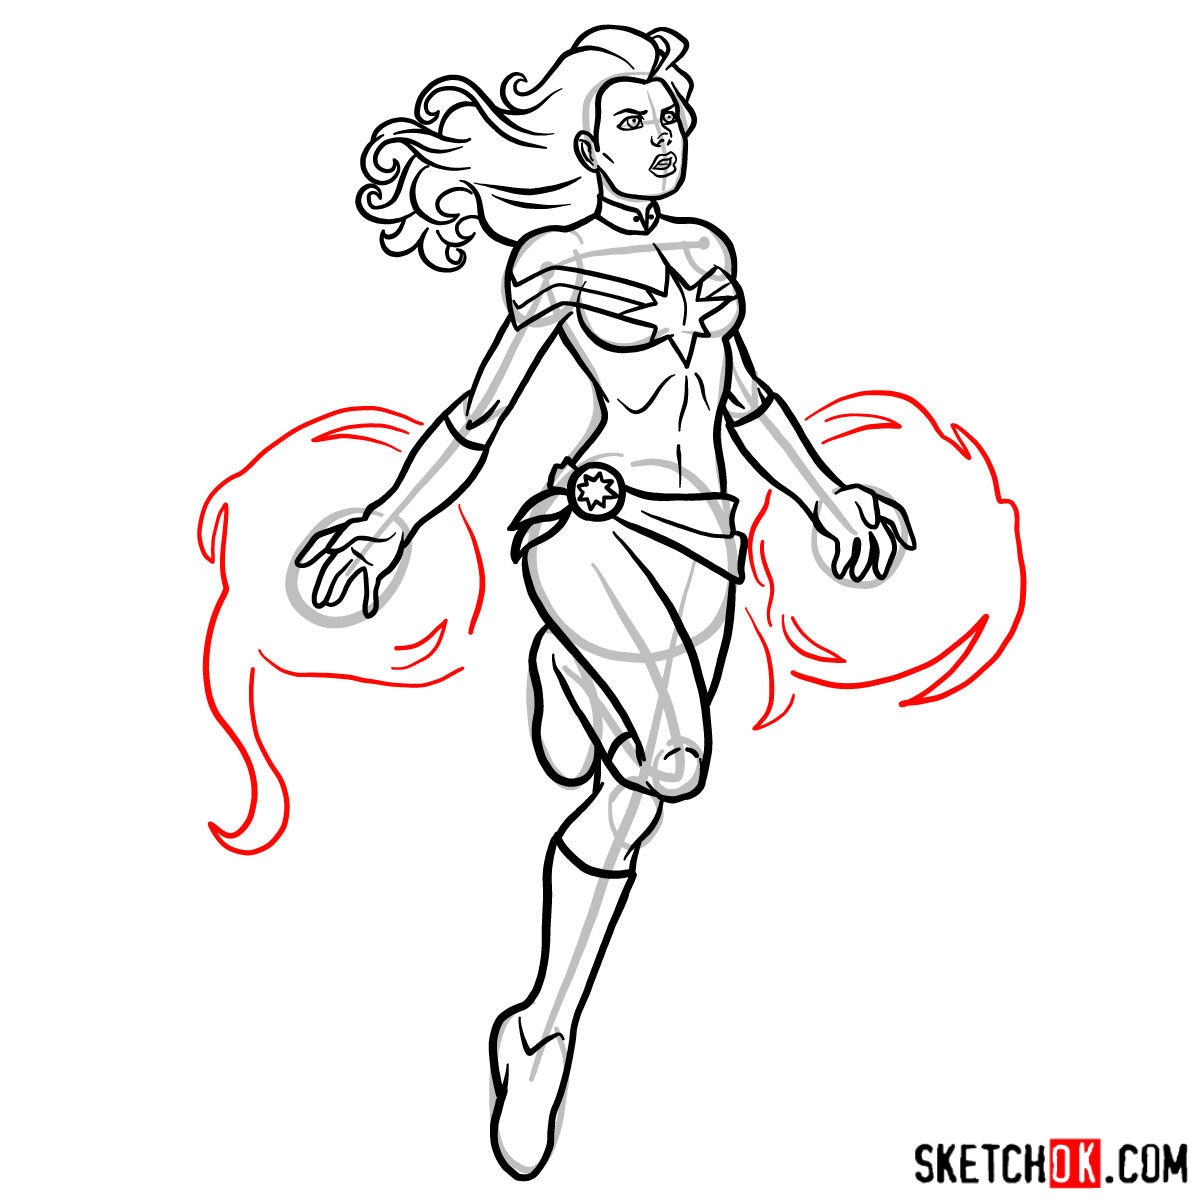 How to draw Captain Marvel (Carol Danvers) - step 14